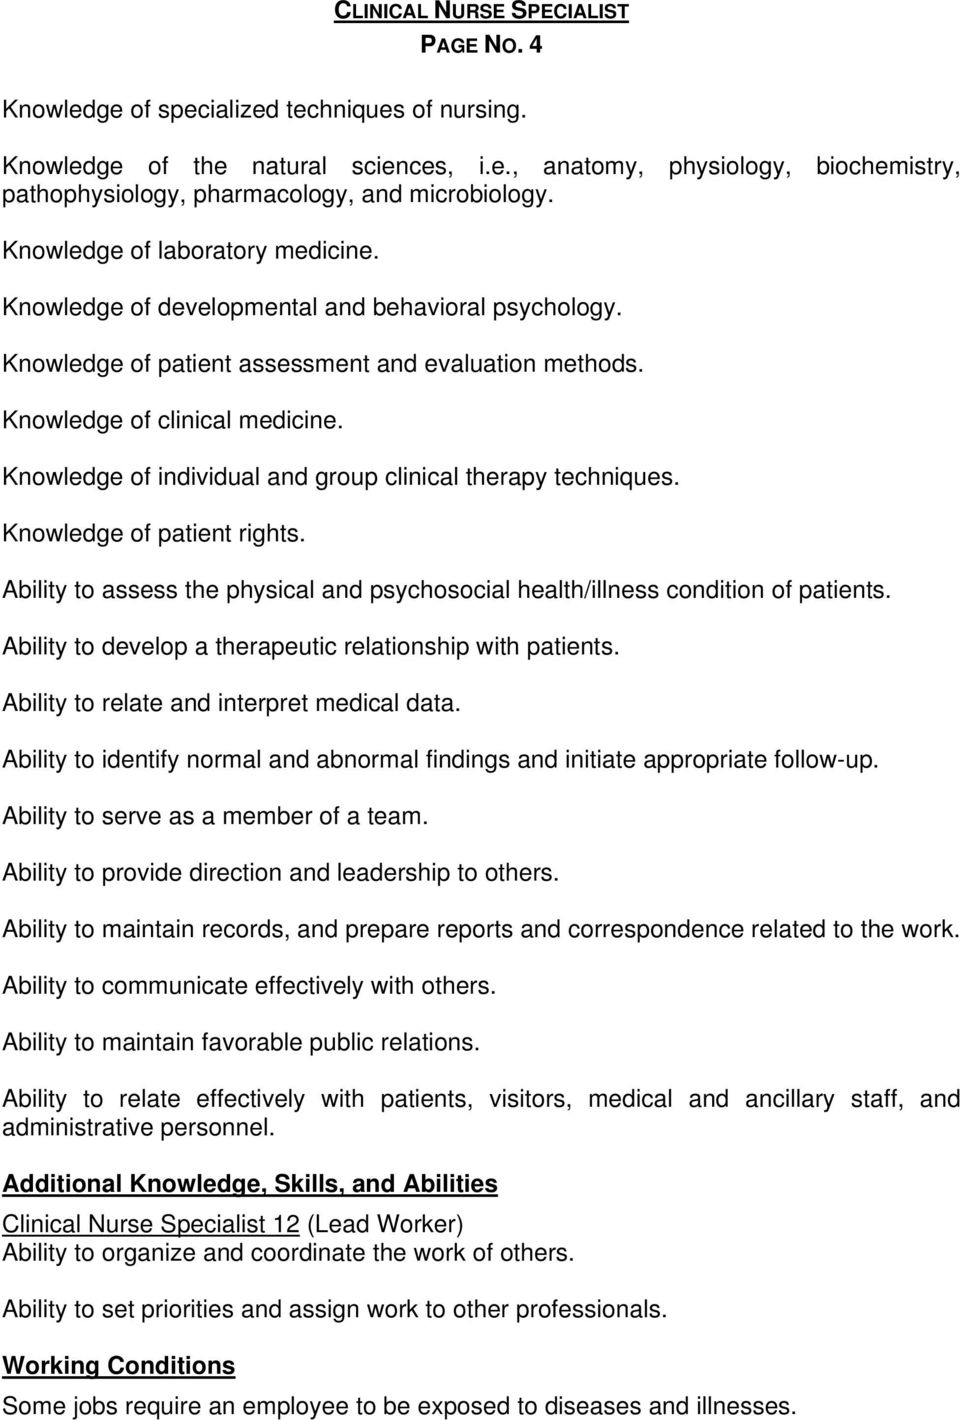 Knowledge of individual and group clinical therapy techniques. Knowledge of patient rights. Ability to assess the physical and psychosocial health/illness condition of patients.